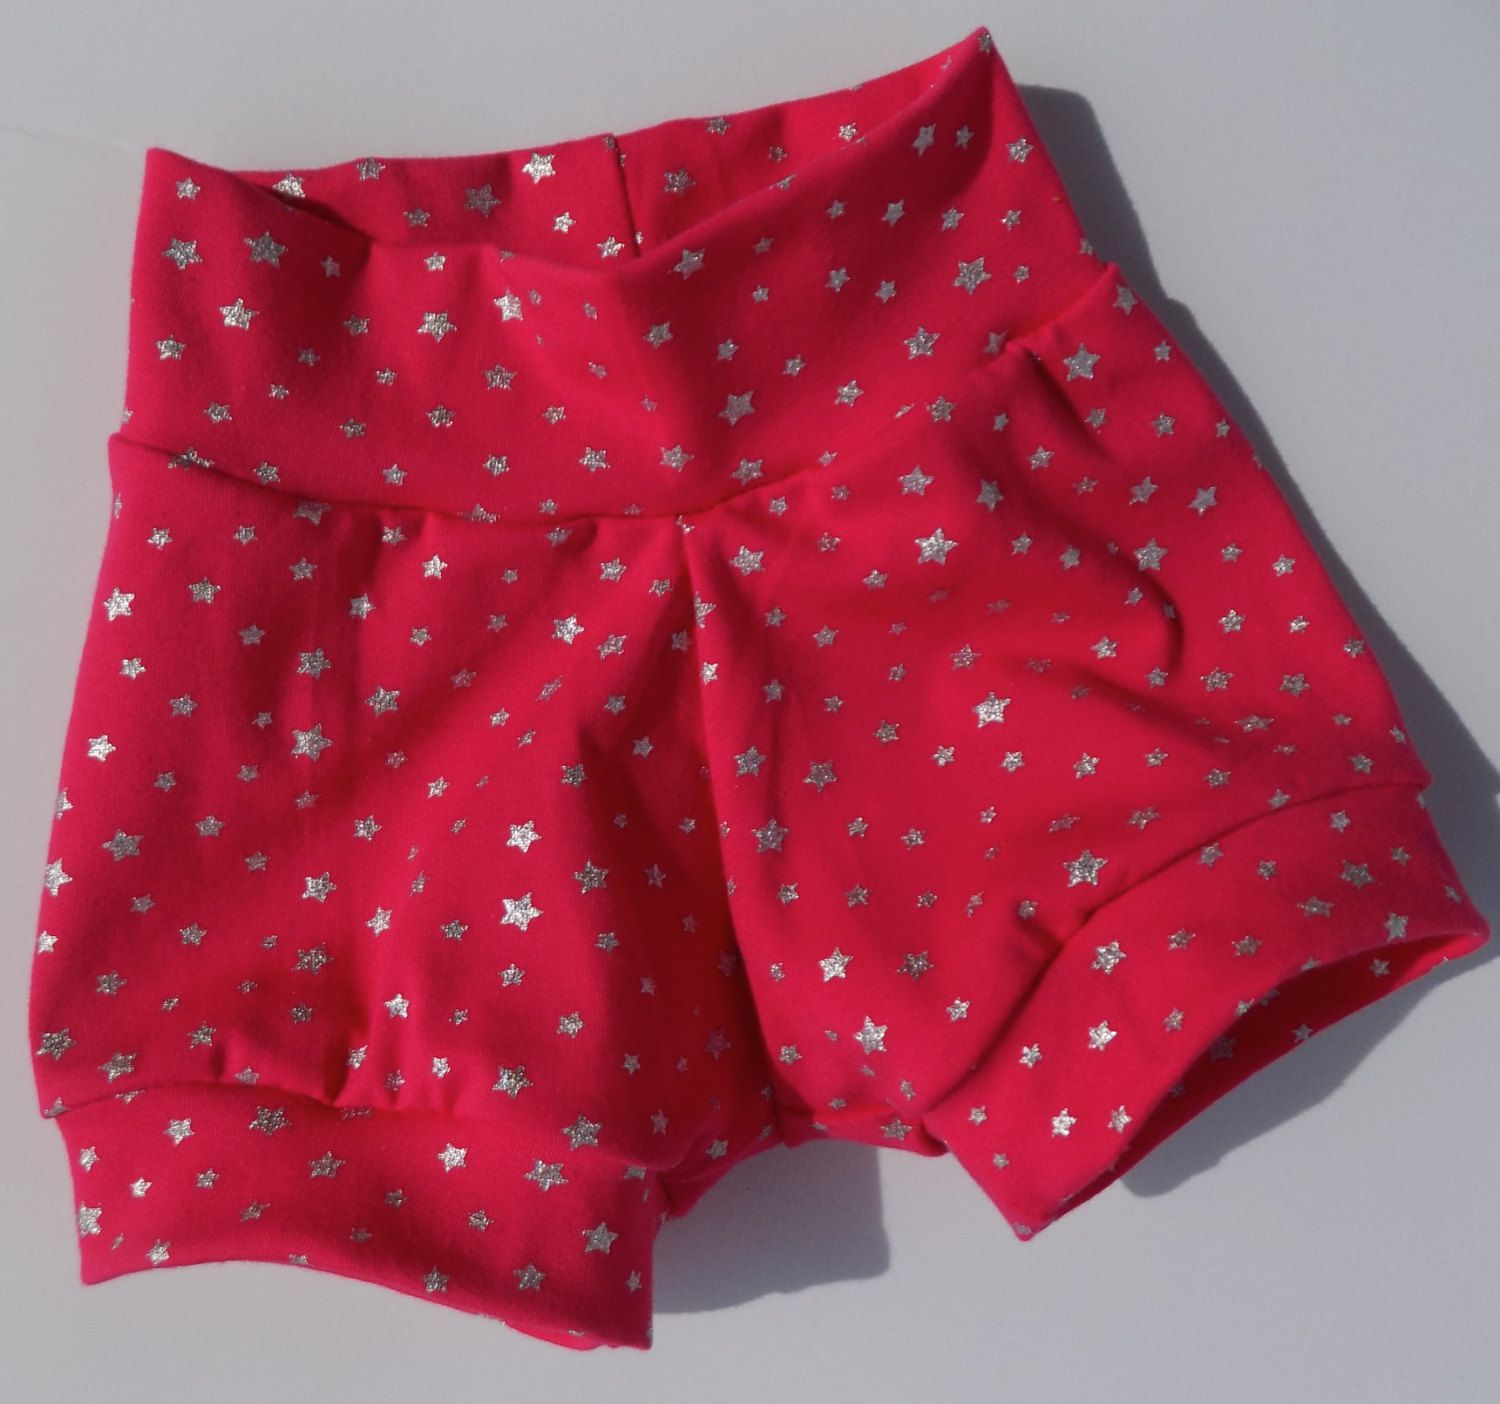 BRIGHT pink and SHINY silver star baby shorts, soft and comfy, TRENDY baby, baby gift by 4arrowsdesign on Etsy